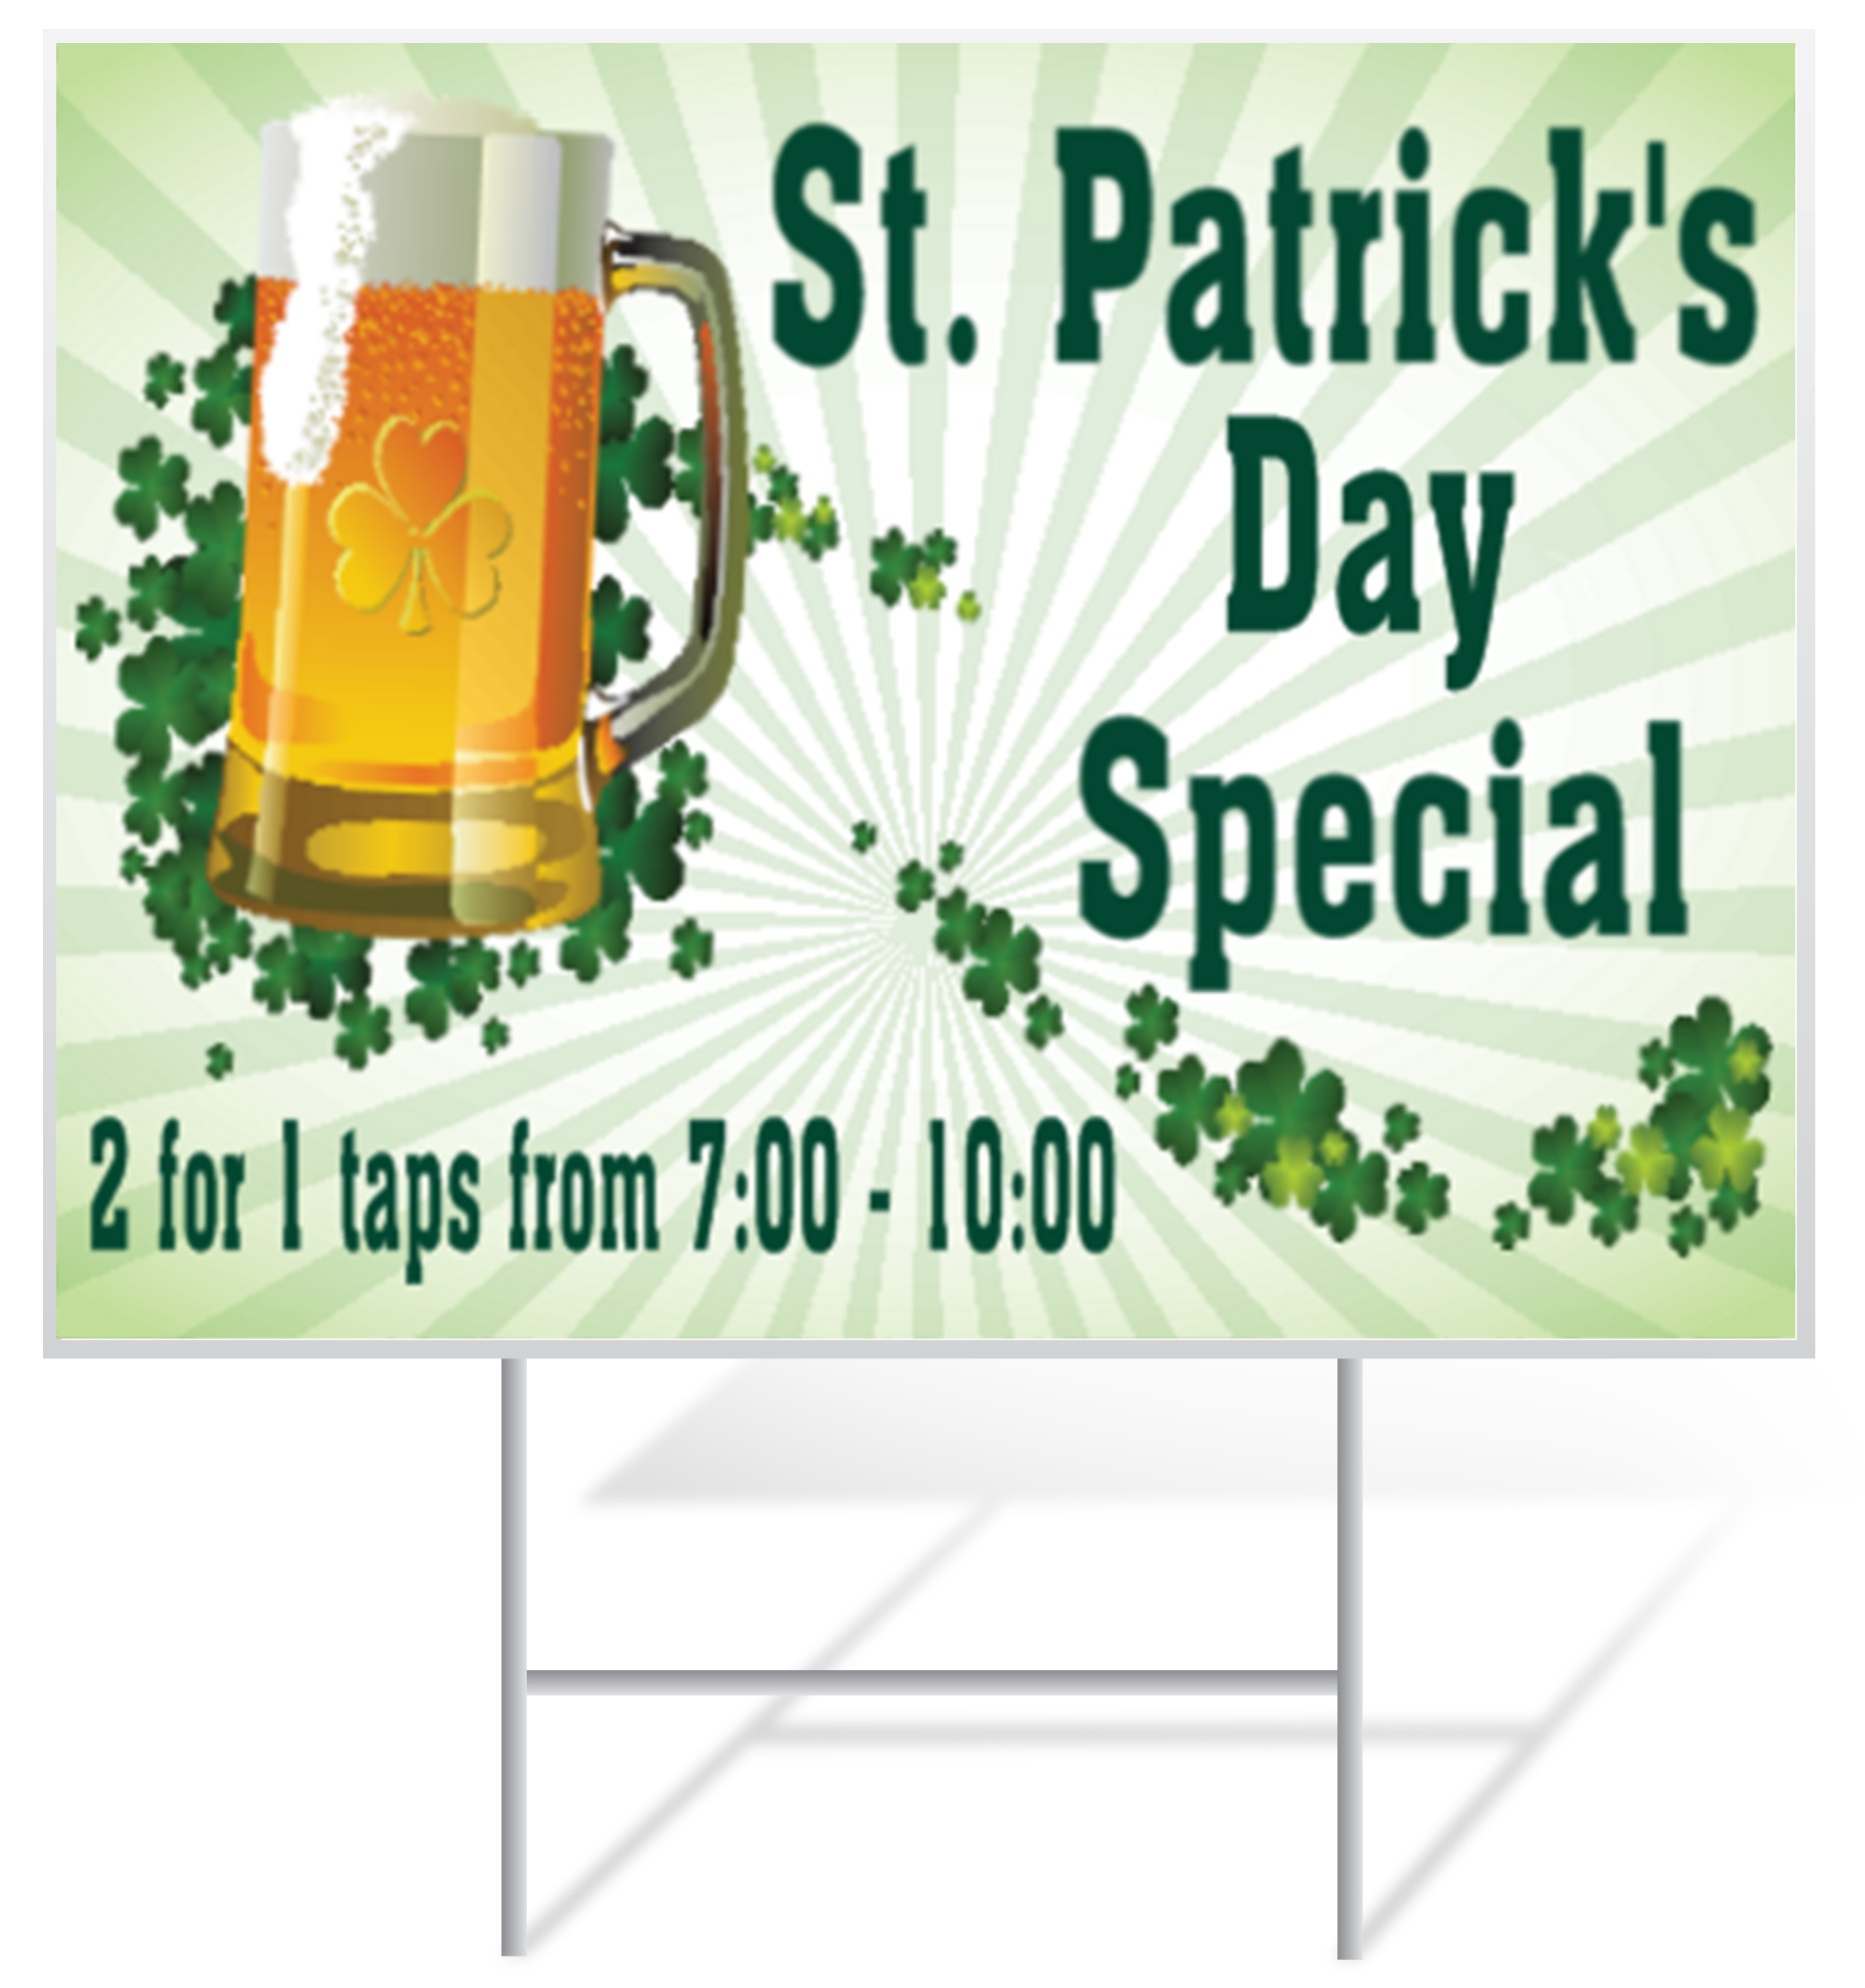 St. Patrick's Day Lawn Sign Example | LawnSigns.com